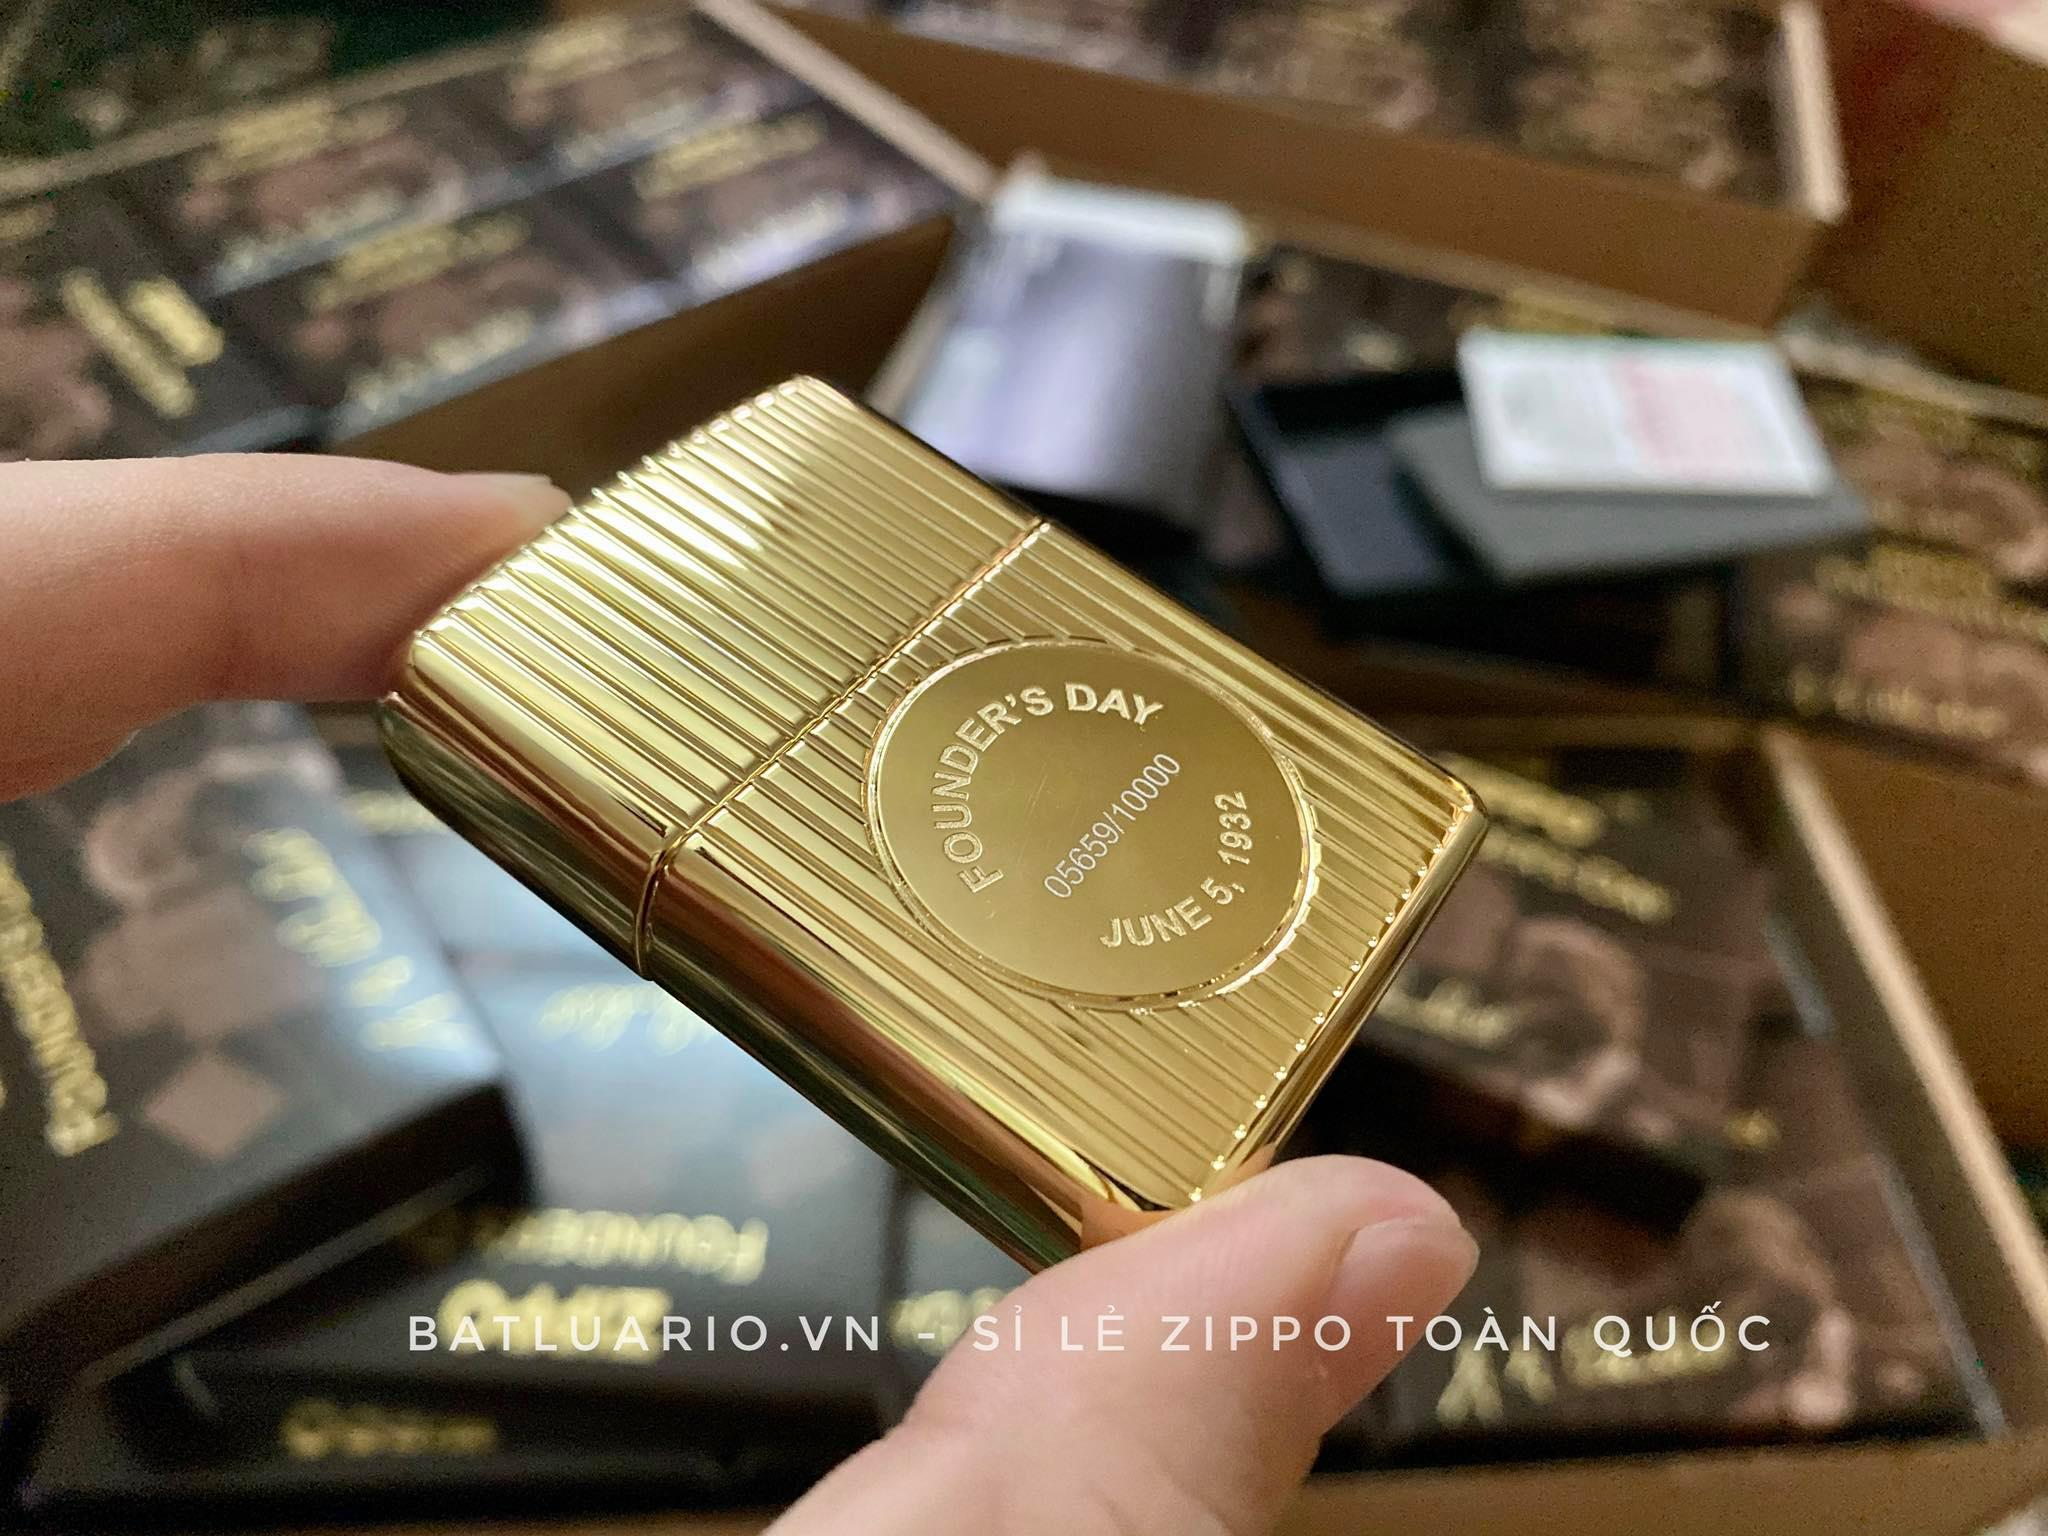 Zippo 49631 - Zippo Founder's Day 2021 Gold Plated Edition Collectible 22